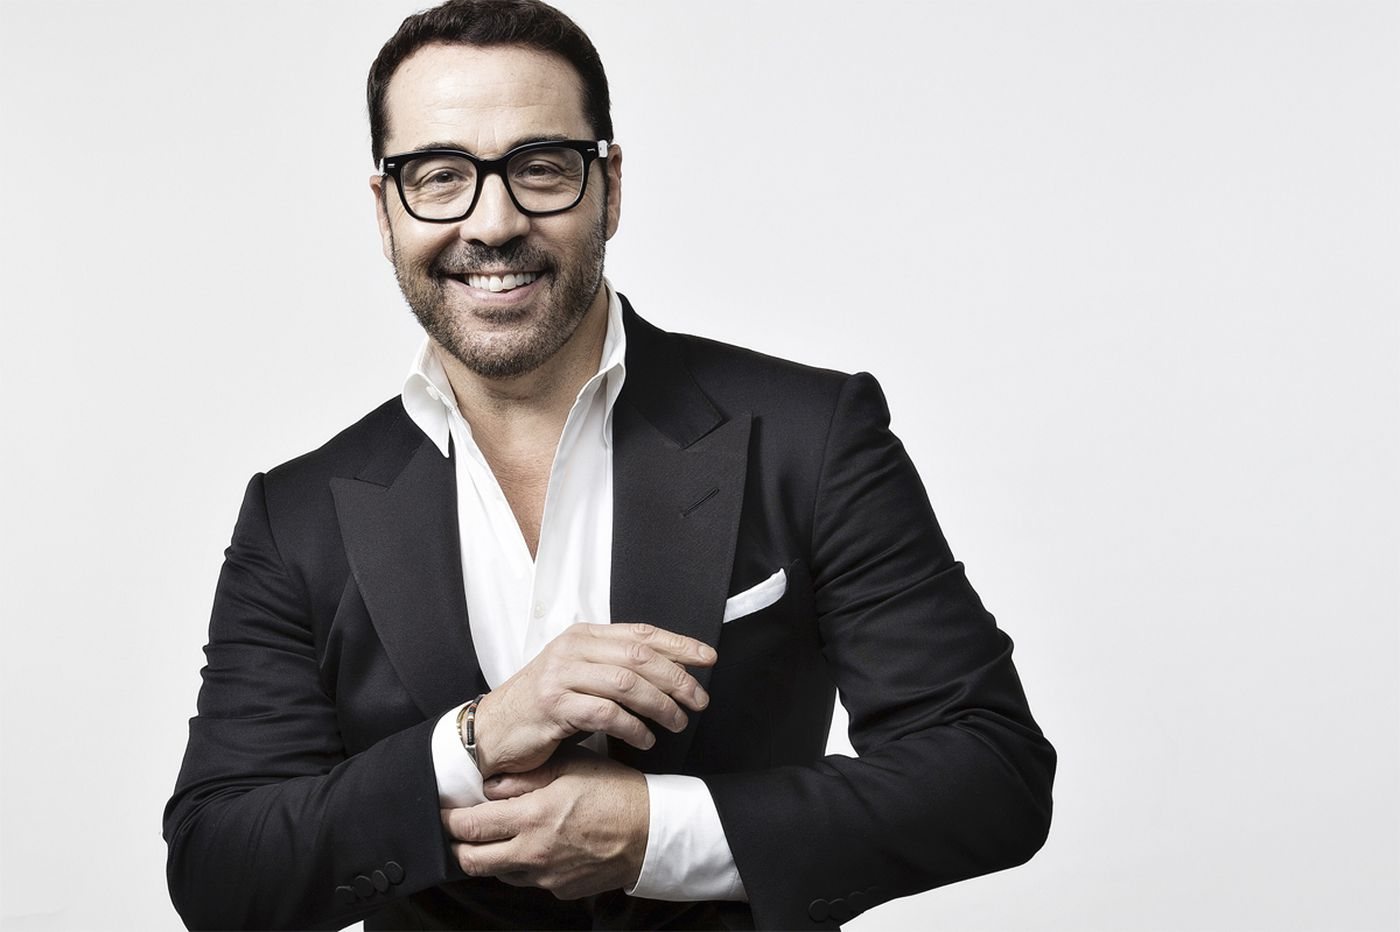 Jeremy Piven wants 'people to get a sense of who I am' at his Philly stand-up show